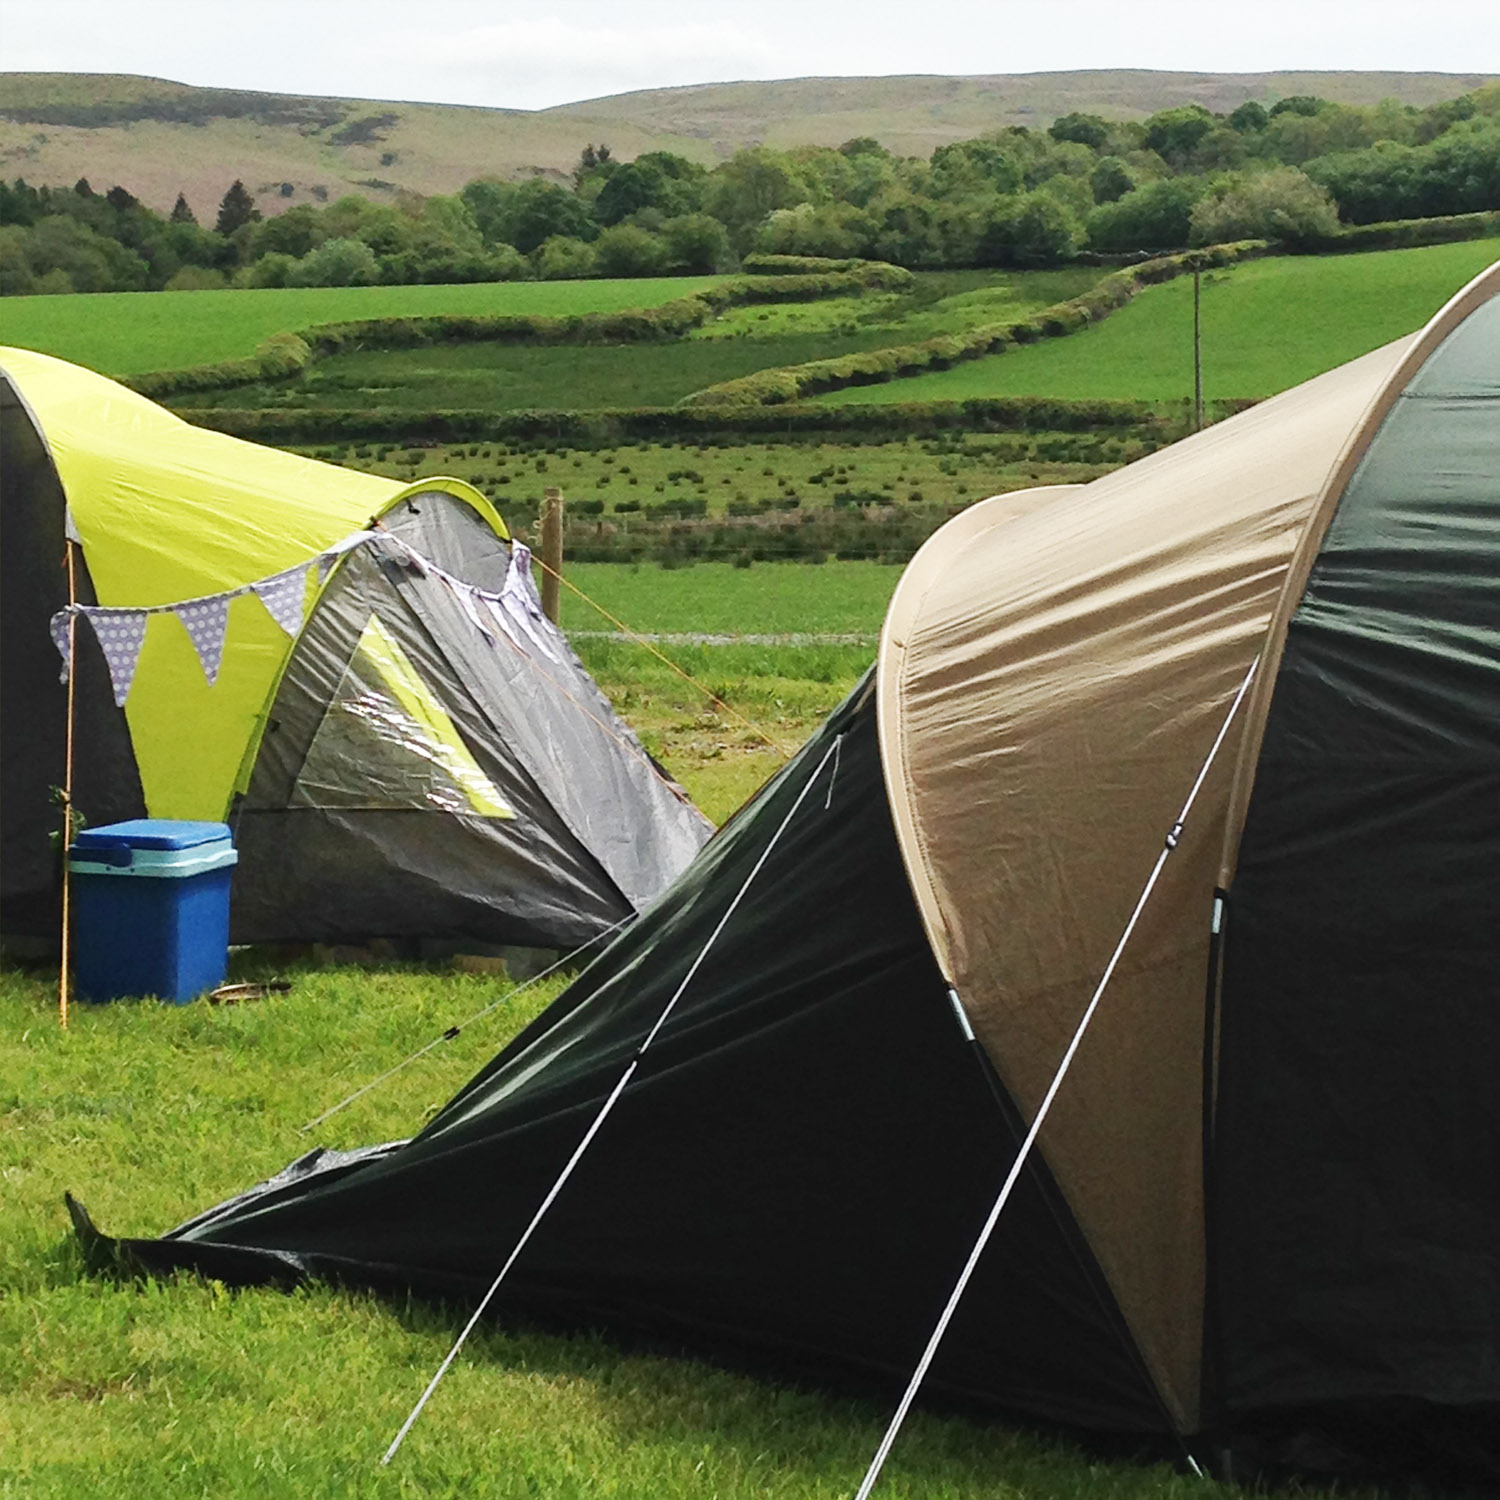 Camping pitches for 4-6 person